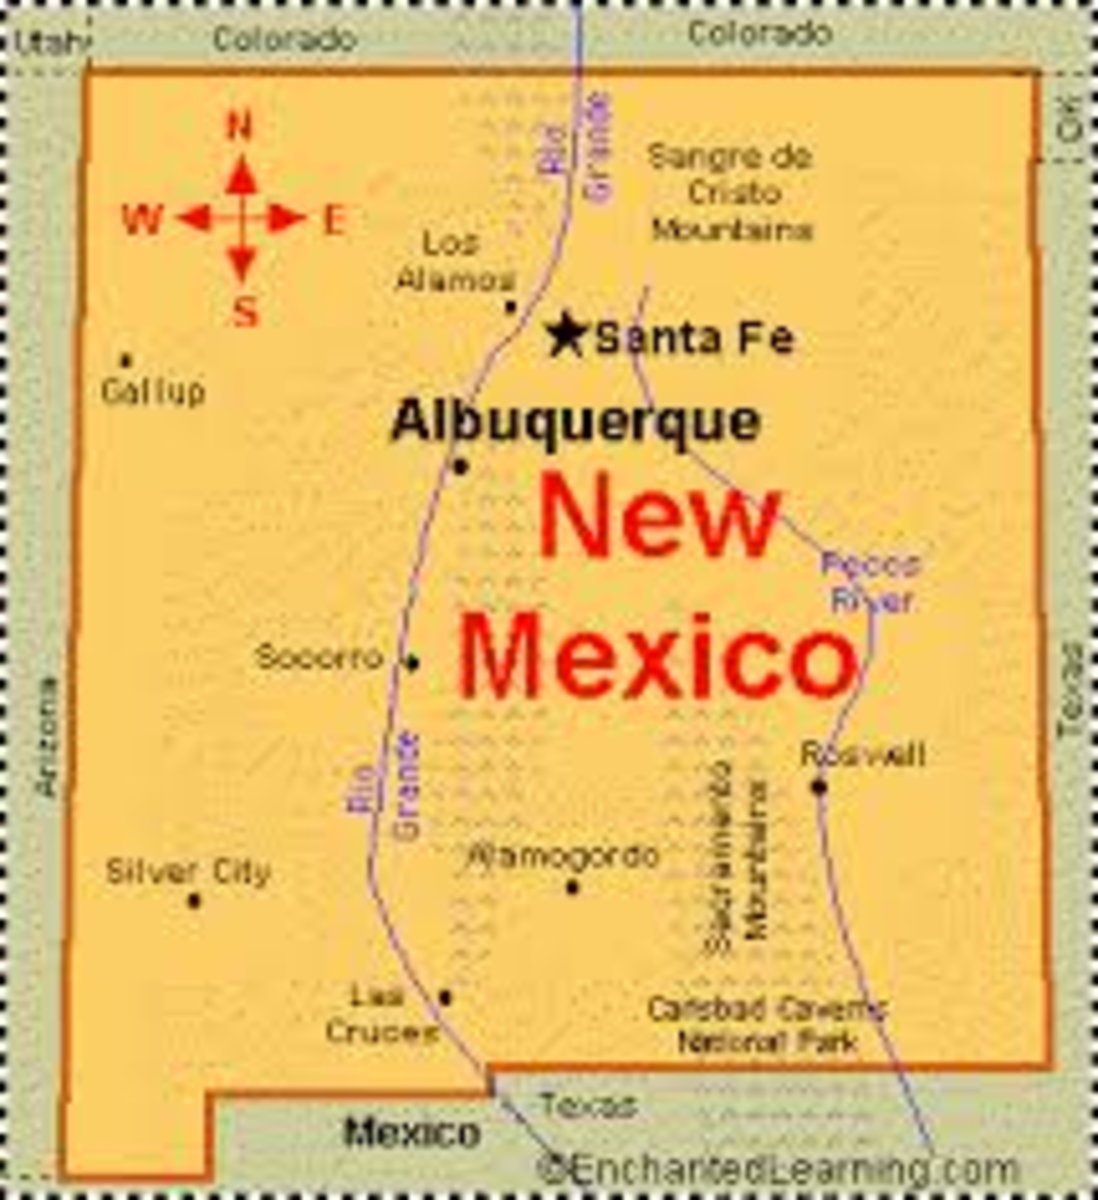 Santa Fe is located about 1 hour north of Albuquerque, New Mexico.